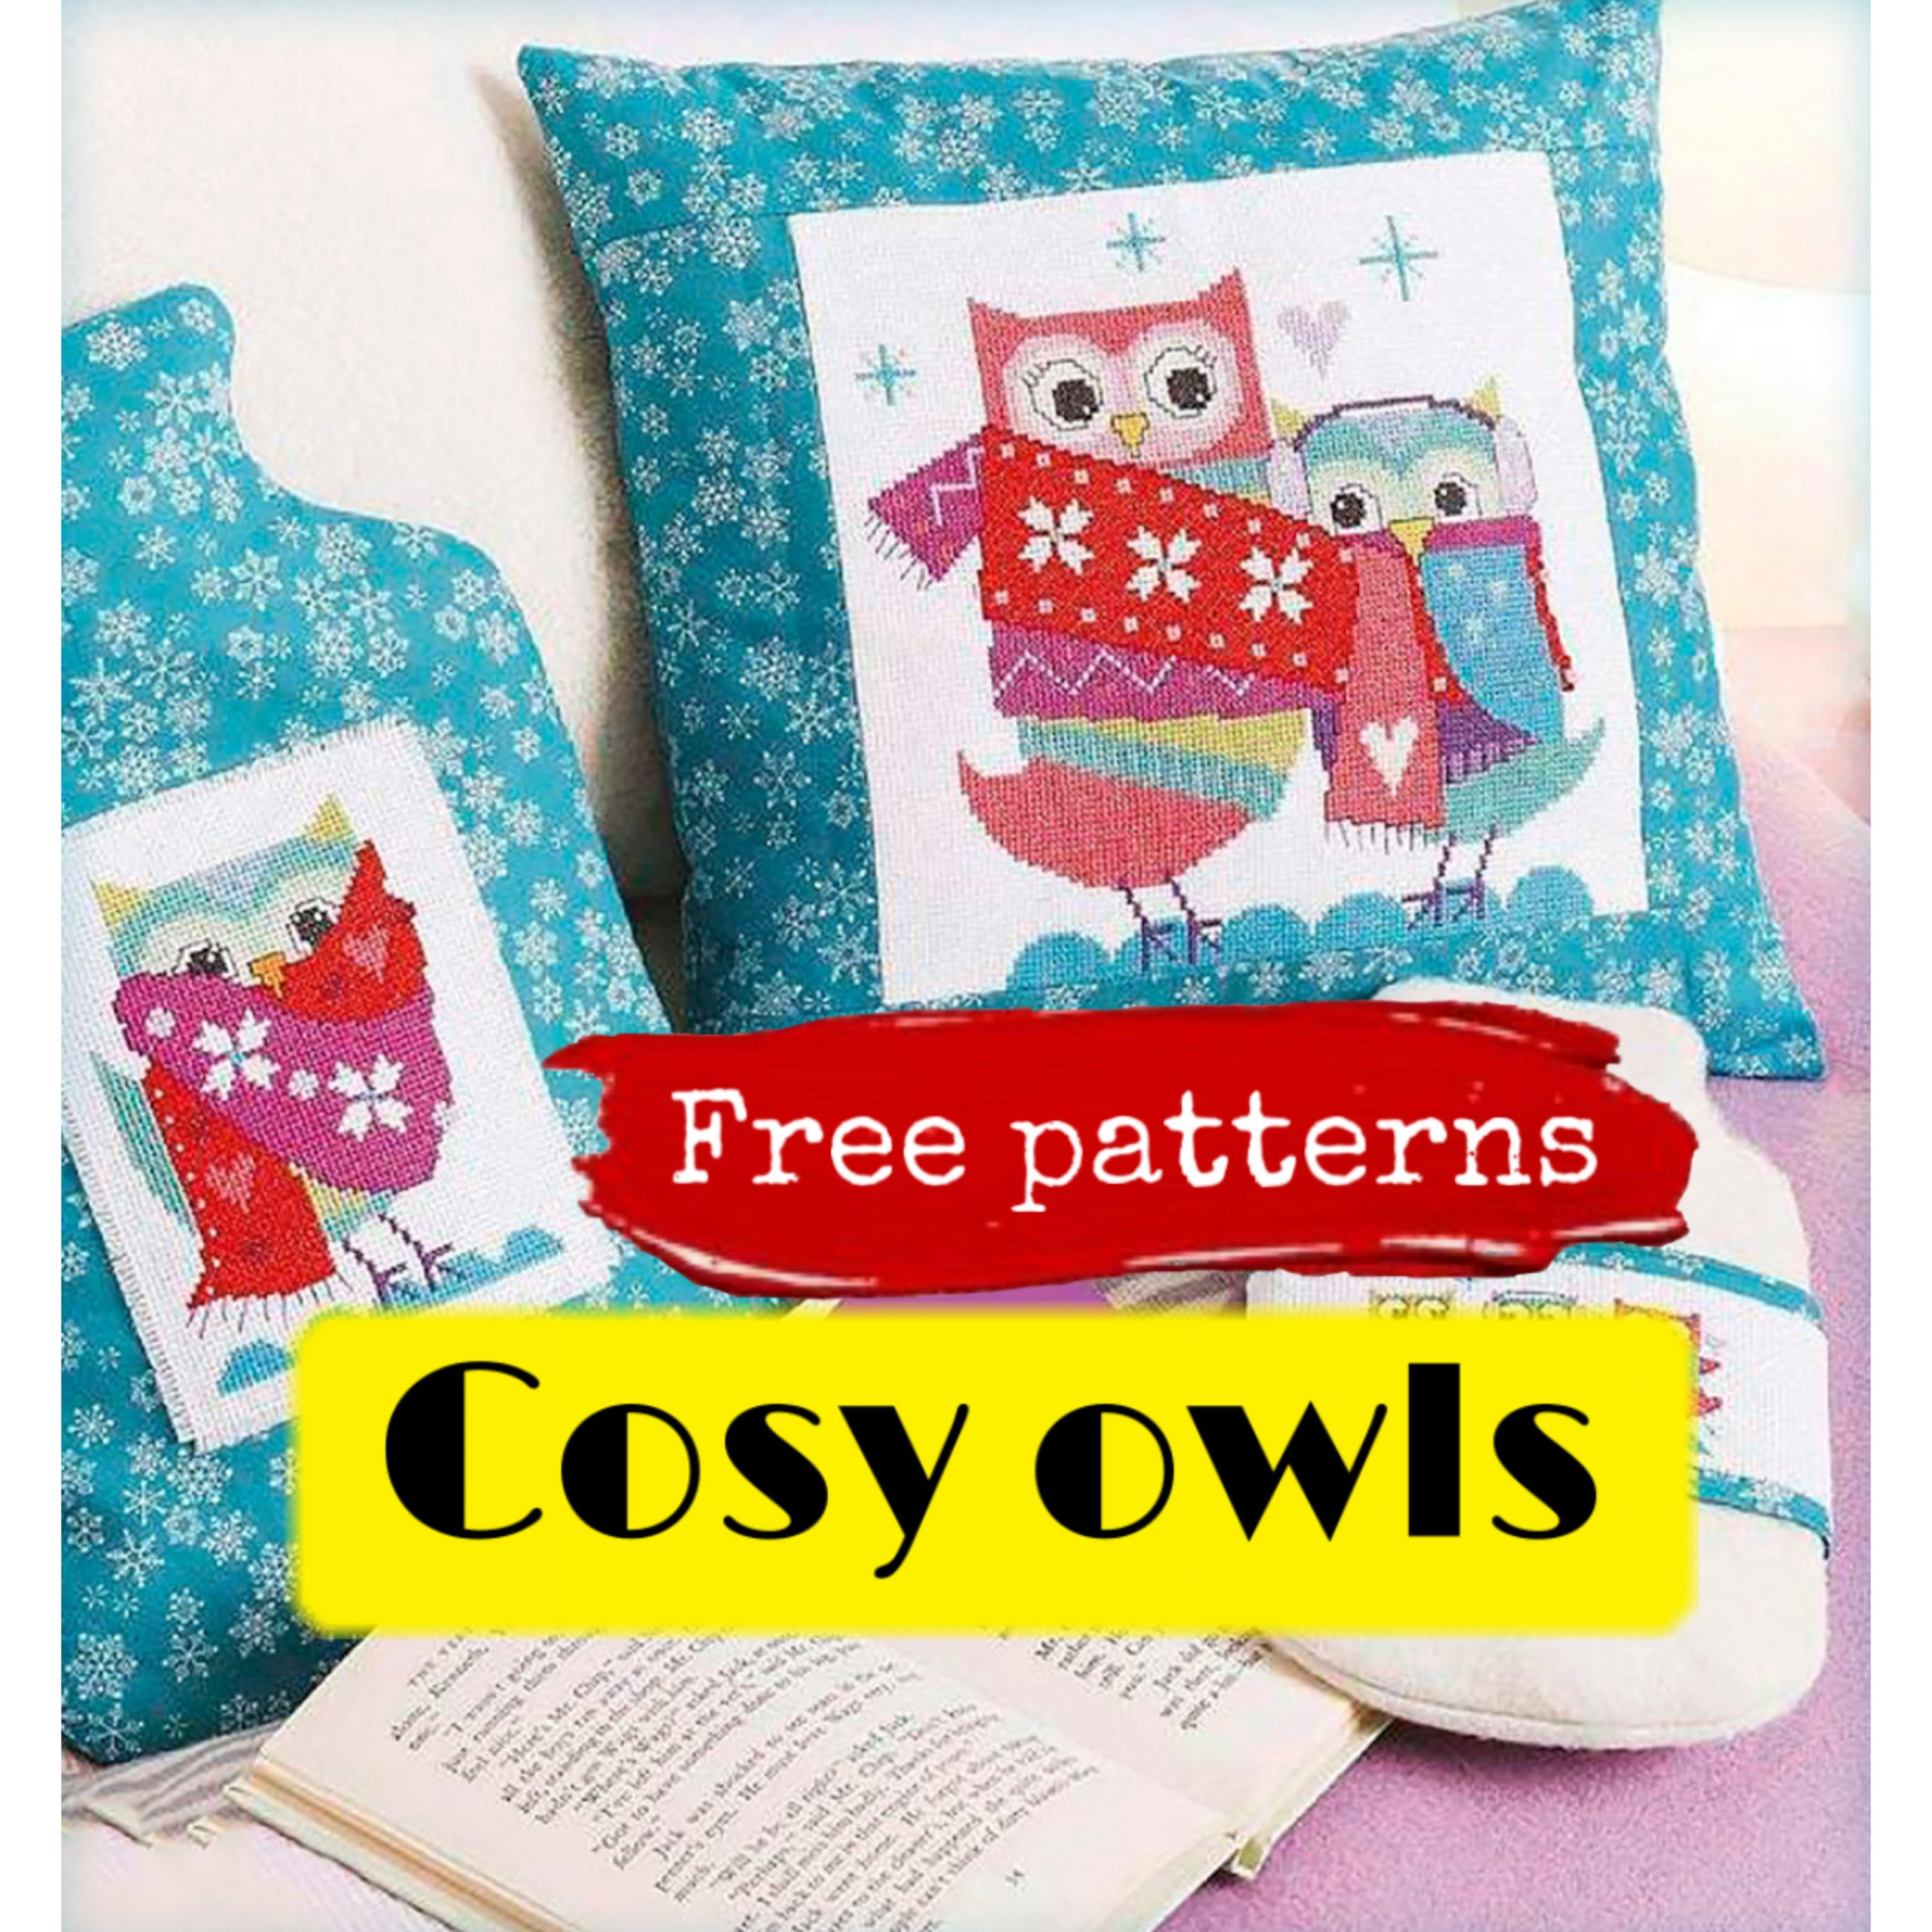 Free cross stitch patterns with cosy owls